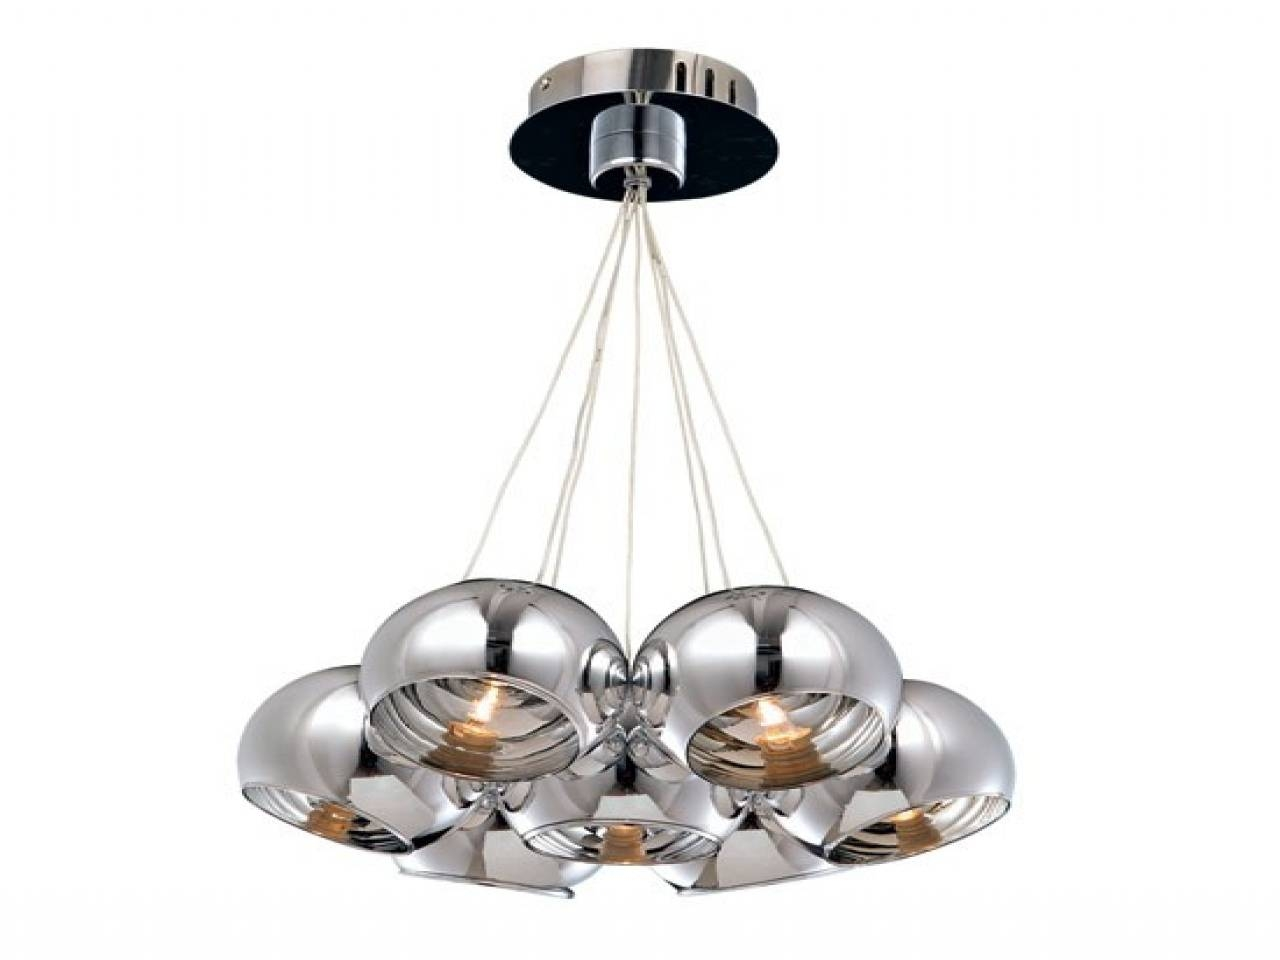 Stunning Cluster Pendant Light In House Design Ideas Pendant in Cluster Glass Pendant Lights Fixtures (Image 15 of 15)